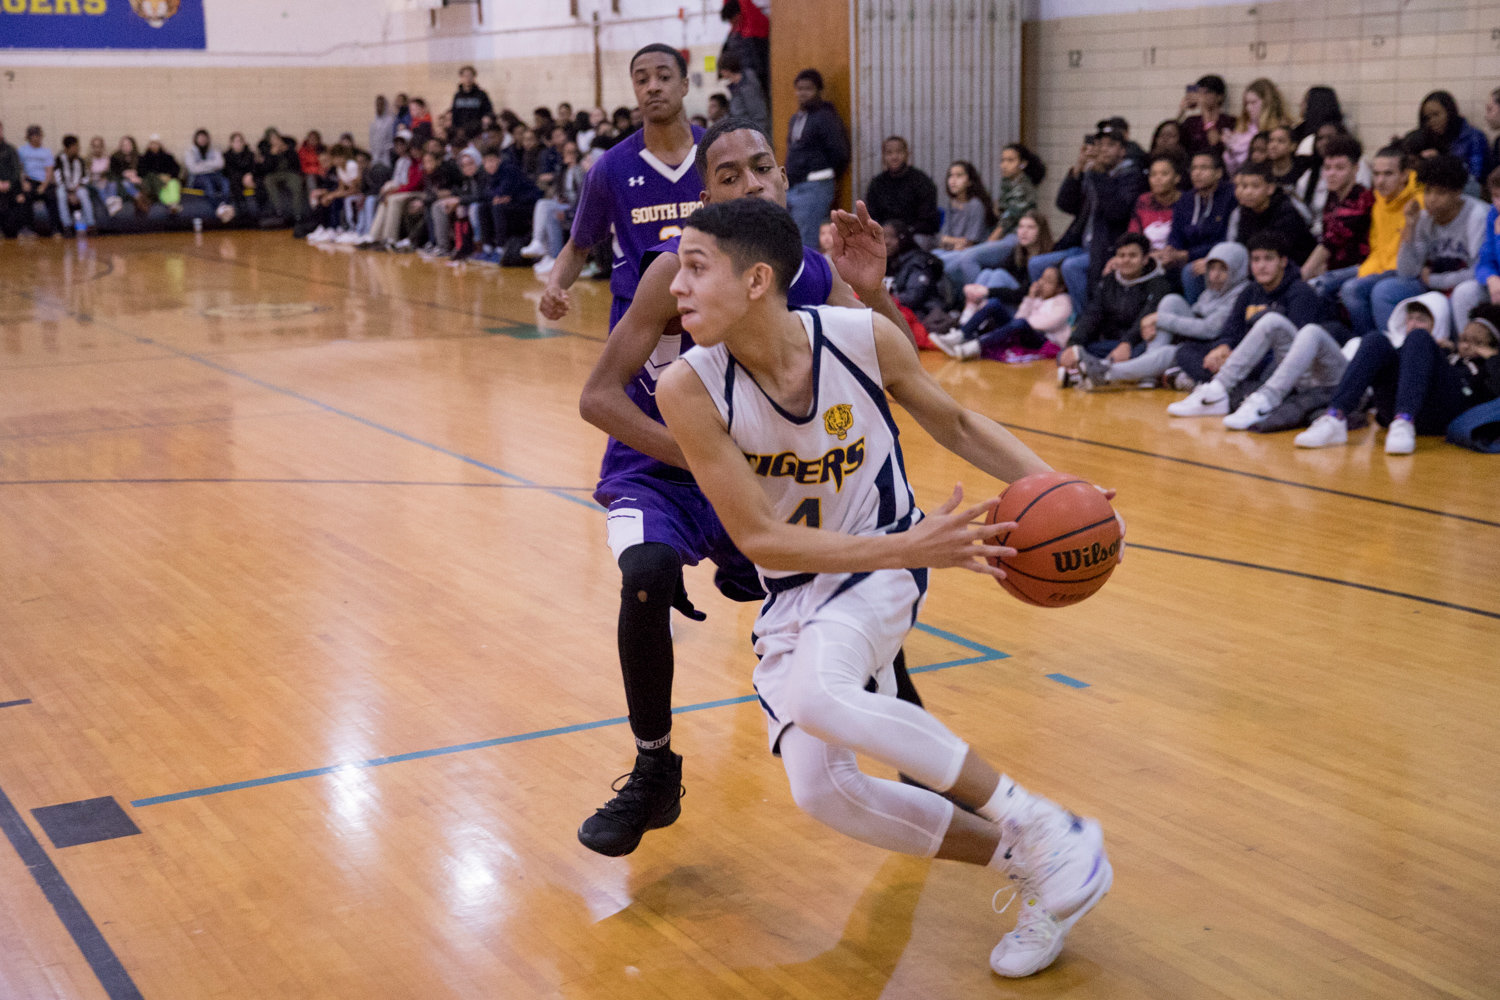 Riverdale/Kingsbridge Academy senior guard Ethan Bonet works his way around a South Bronx defender during the Tigers' loss to the Phoenix last week.